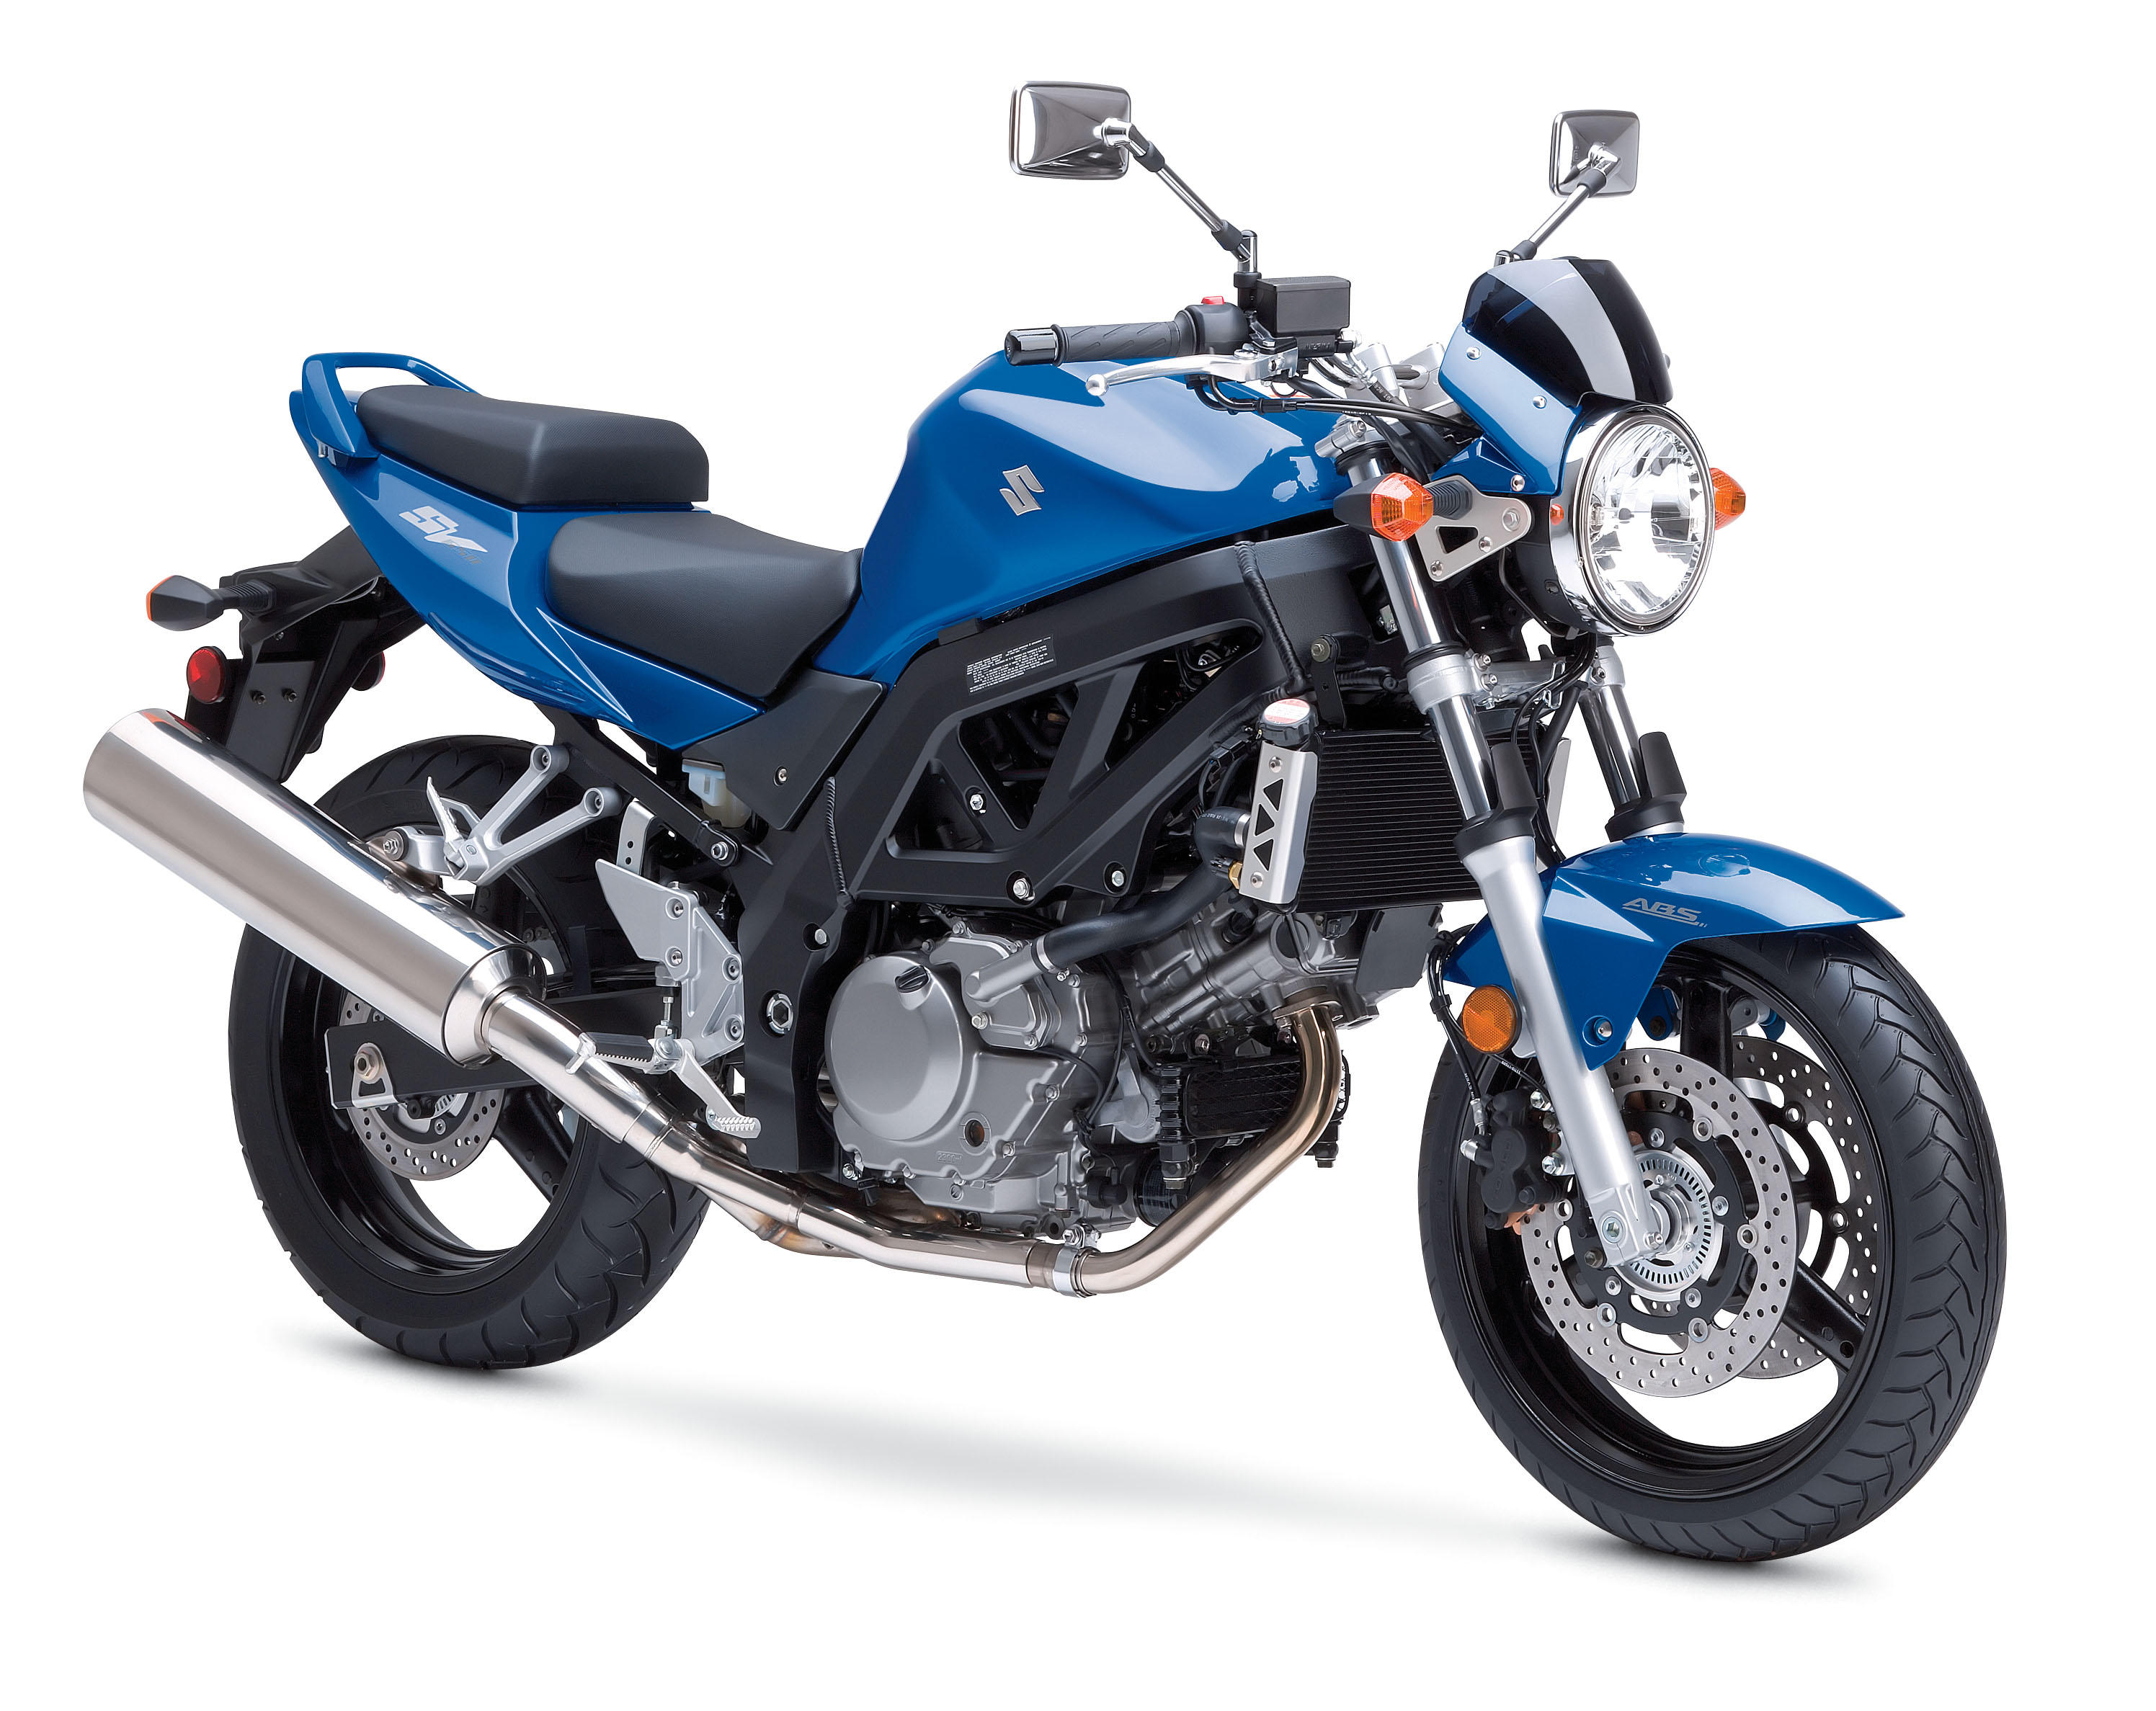 2008 suzuki sv650 review top speed. Black Bedroom Furniture Sets. Home Design Ideas